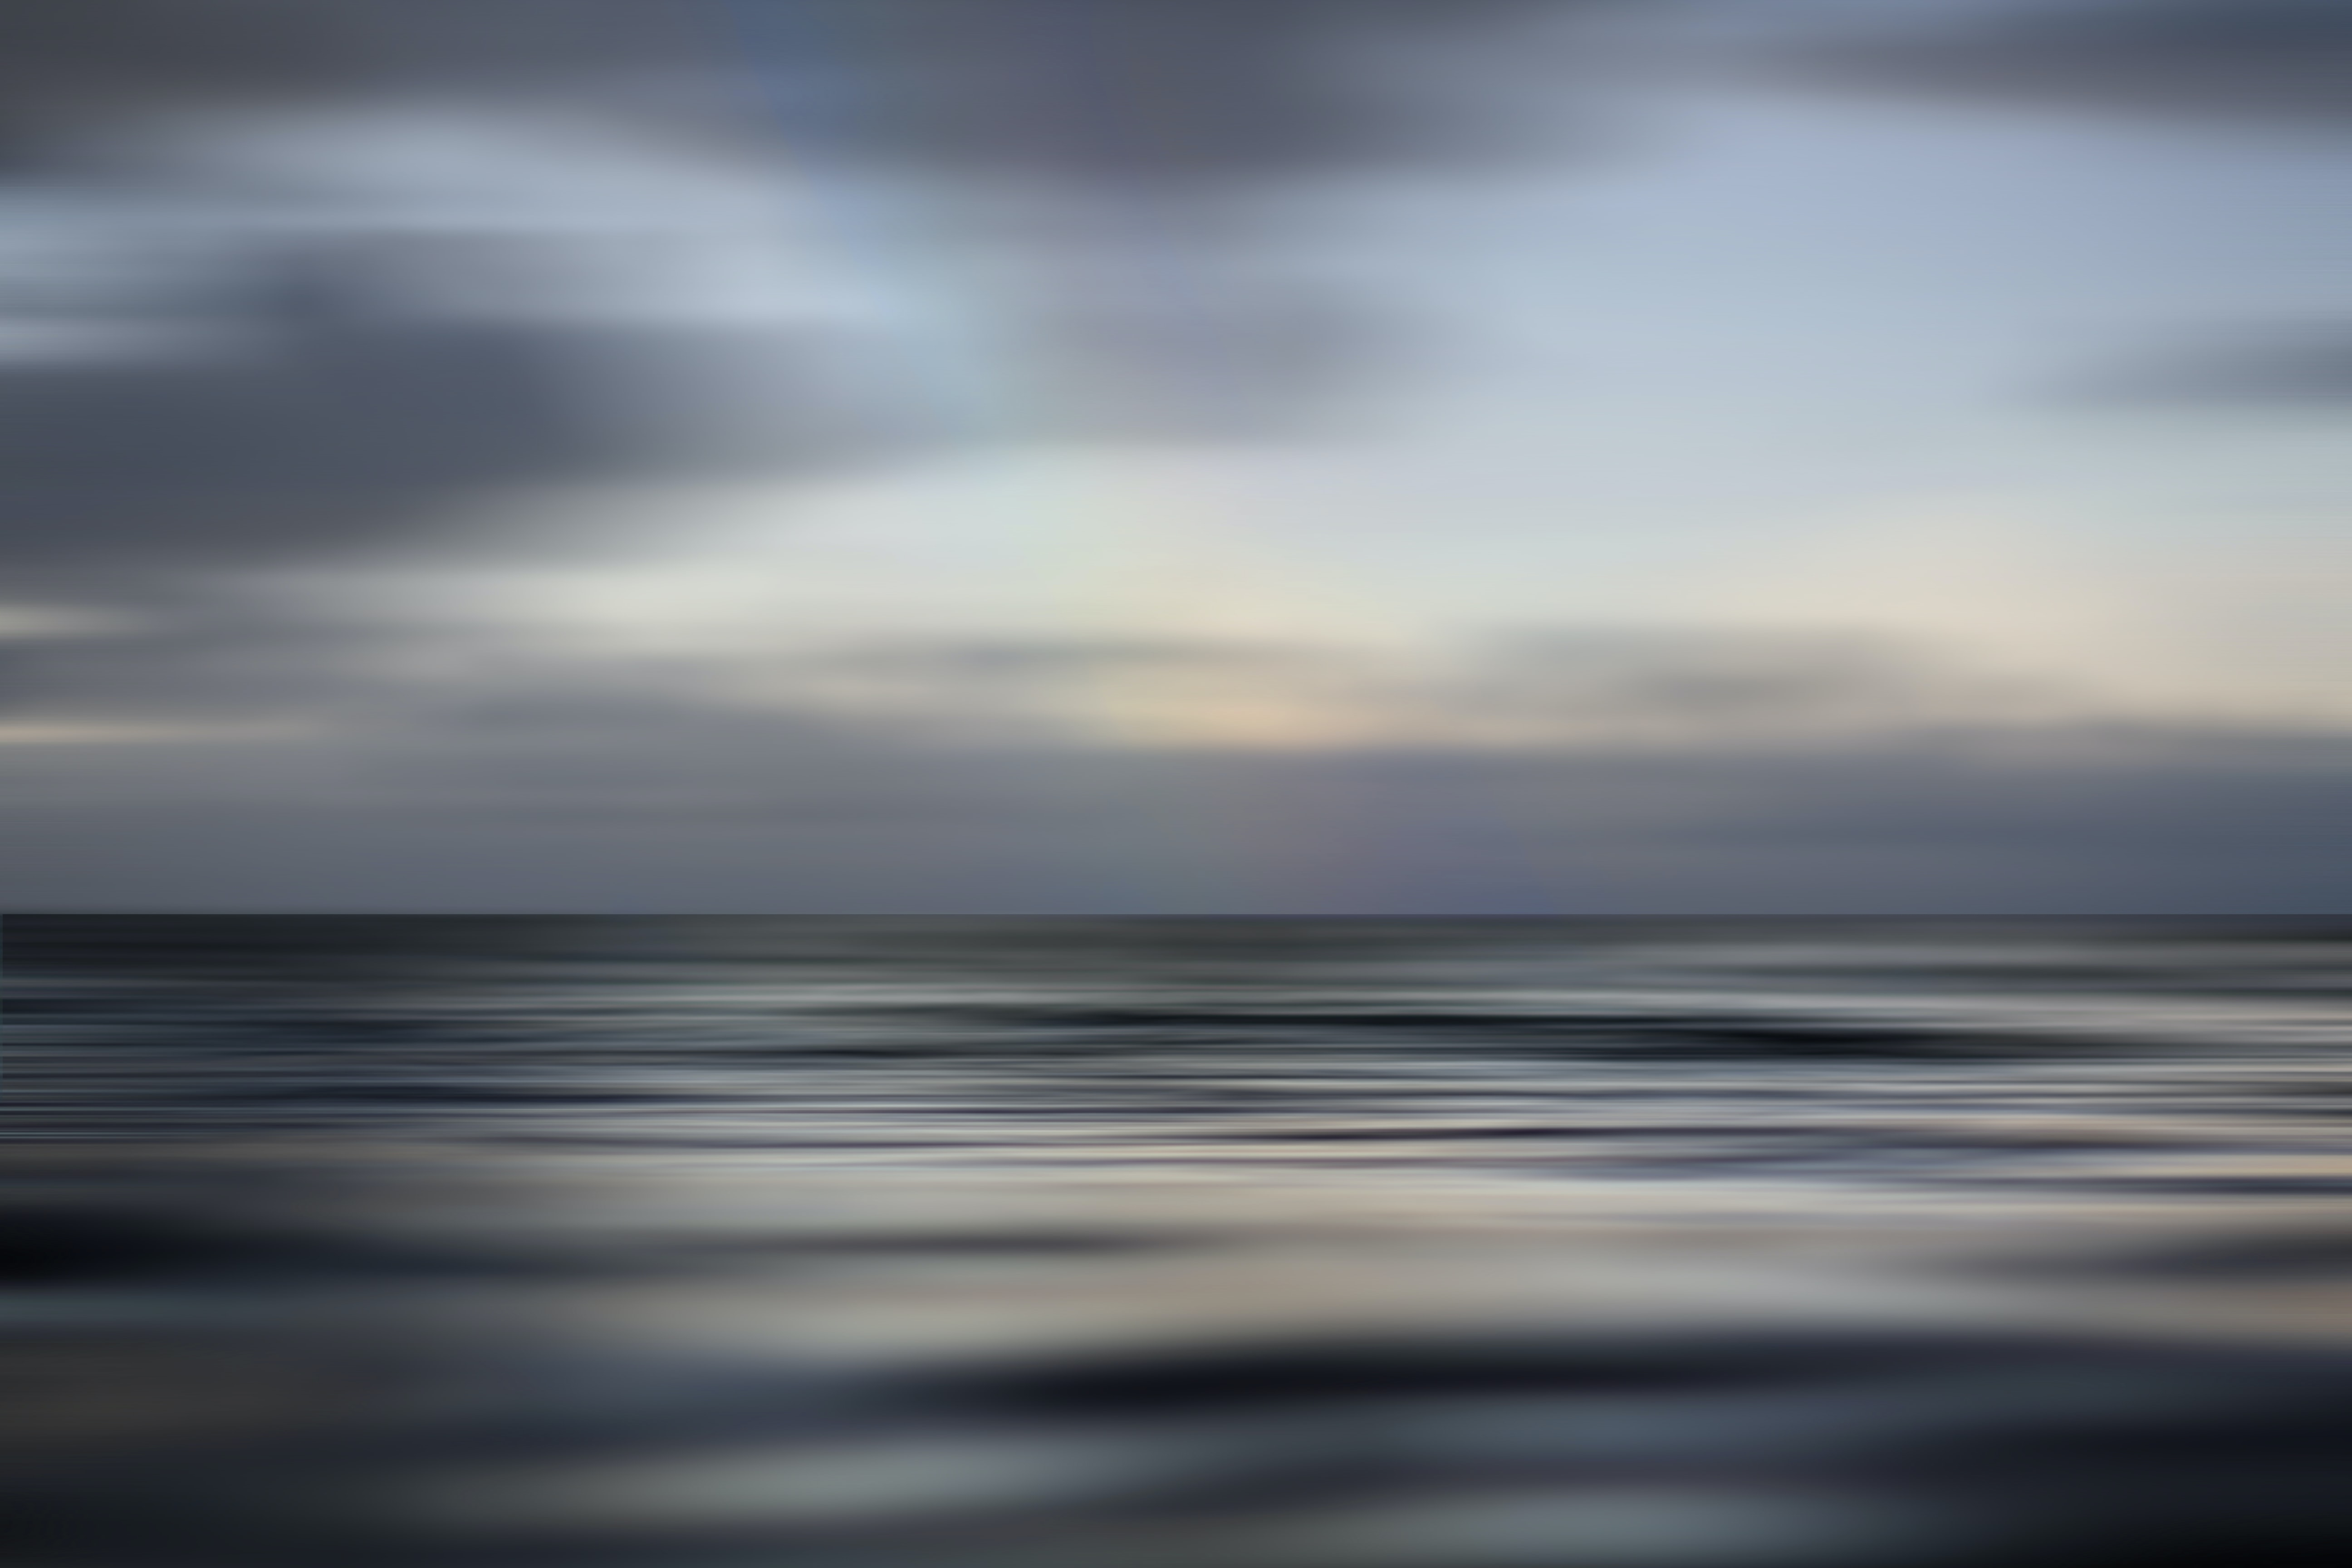 time lapse of body of water